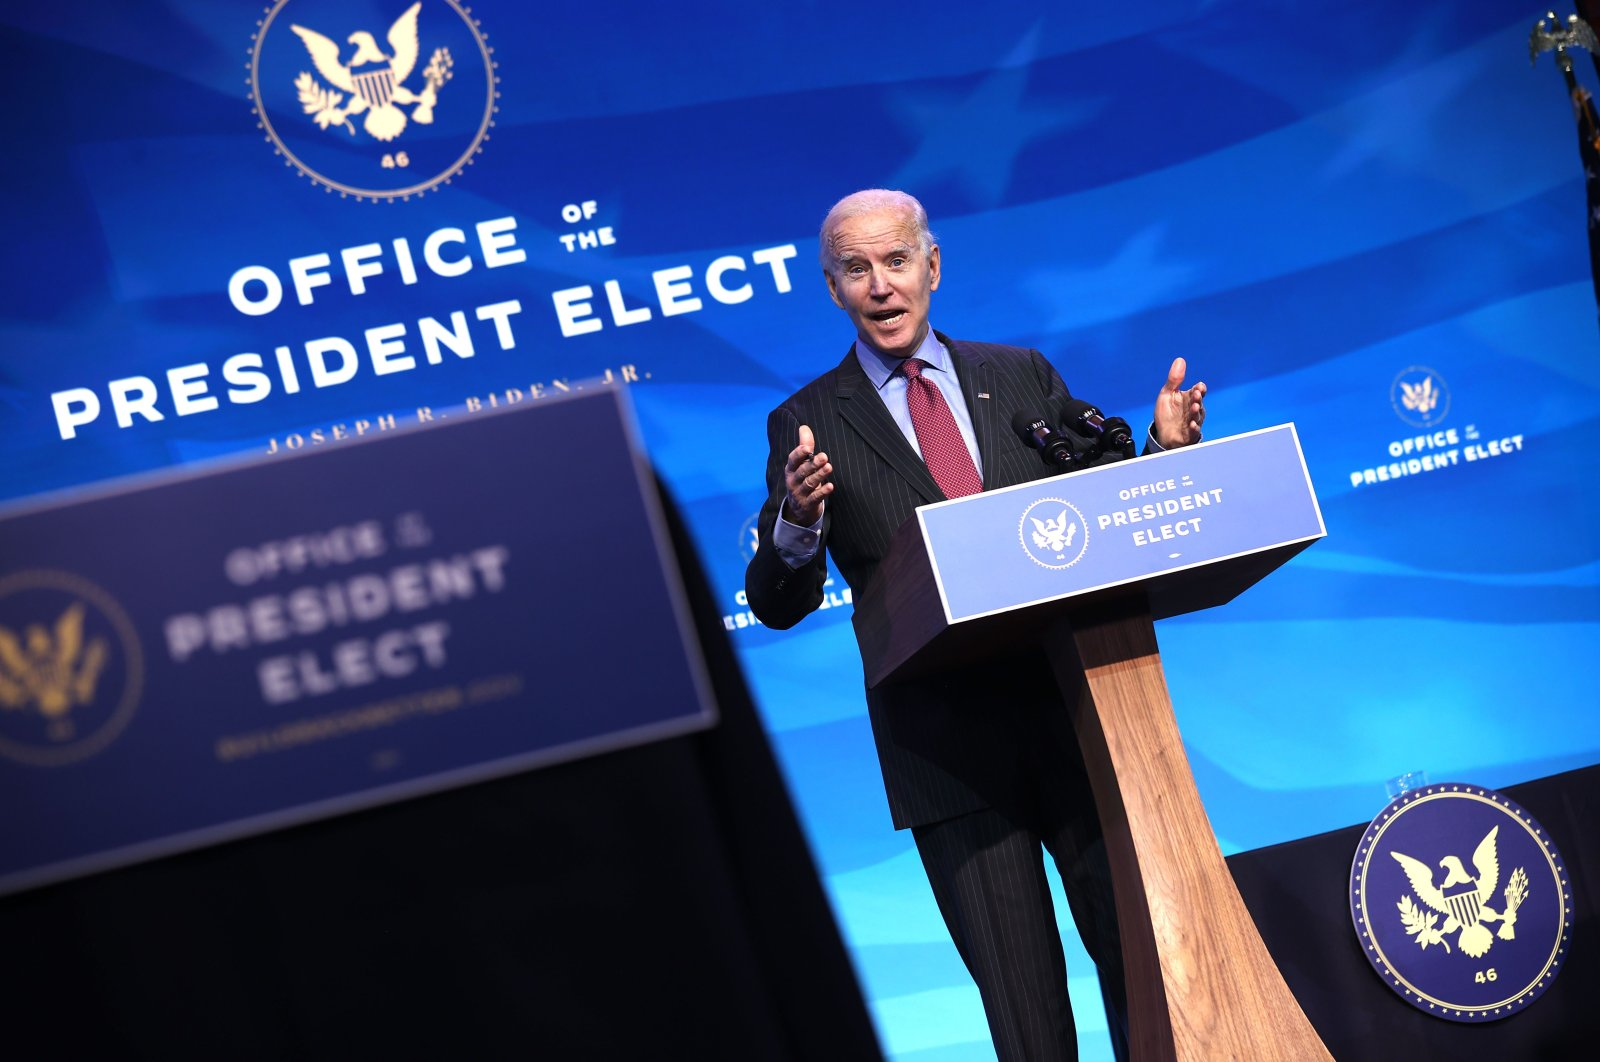 U.S. President-elect Joe Biden delivers remarks after he announced cabinet nominees that will round out his economic team, including secretaries of commerce and labor, at The Queen theater on January 08, 2021 in Wilmington, Delaware. (AFP Photo)